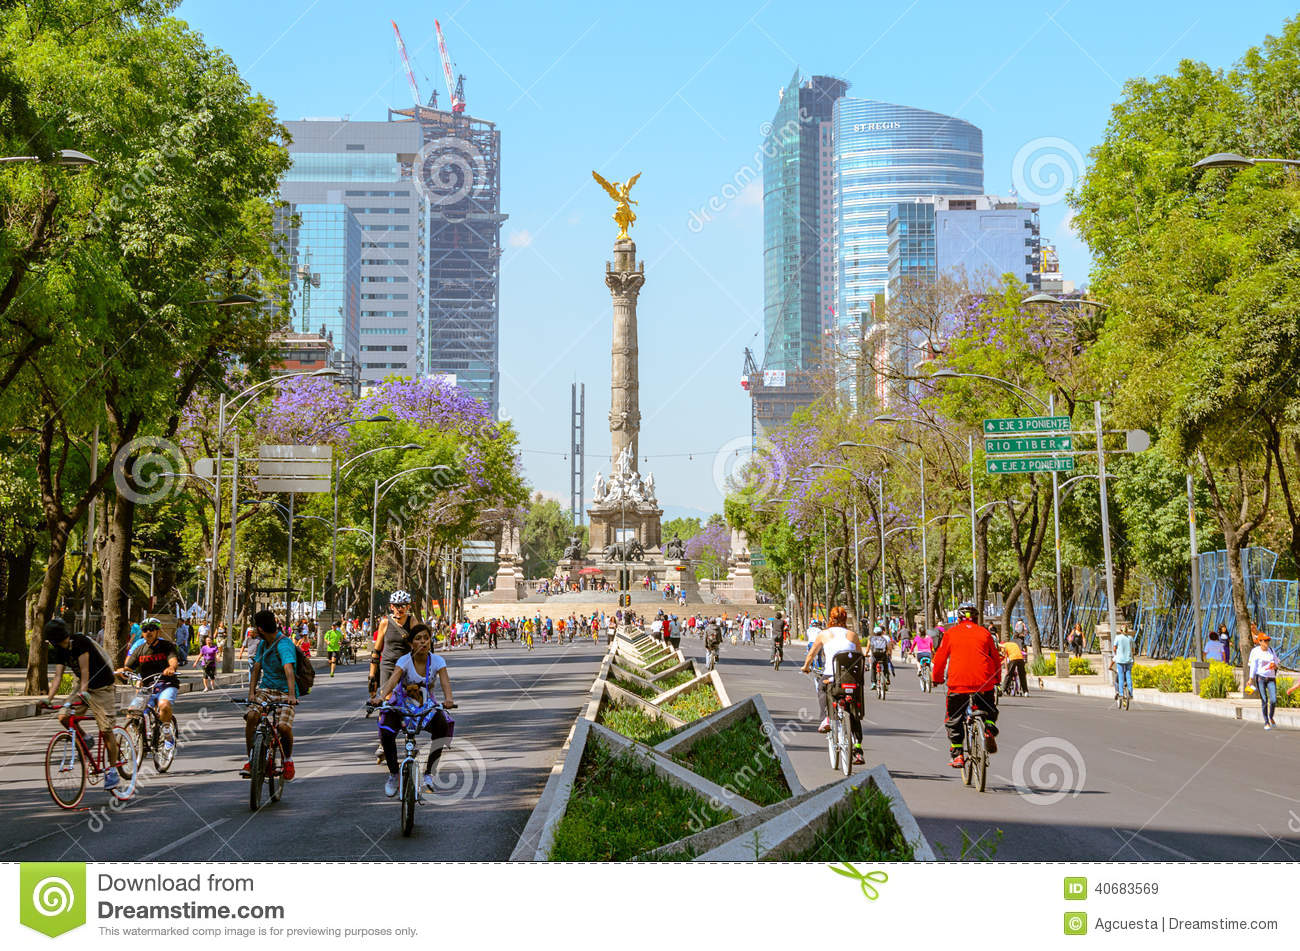 online dating mexico df Mexico city, or the city of mexico it ceased to be called the federal district (spanish: distrito federal or df some of the buildings dating back to the 16th.